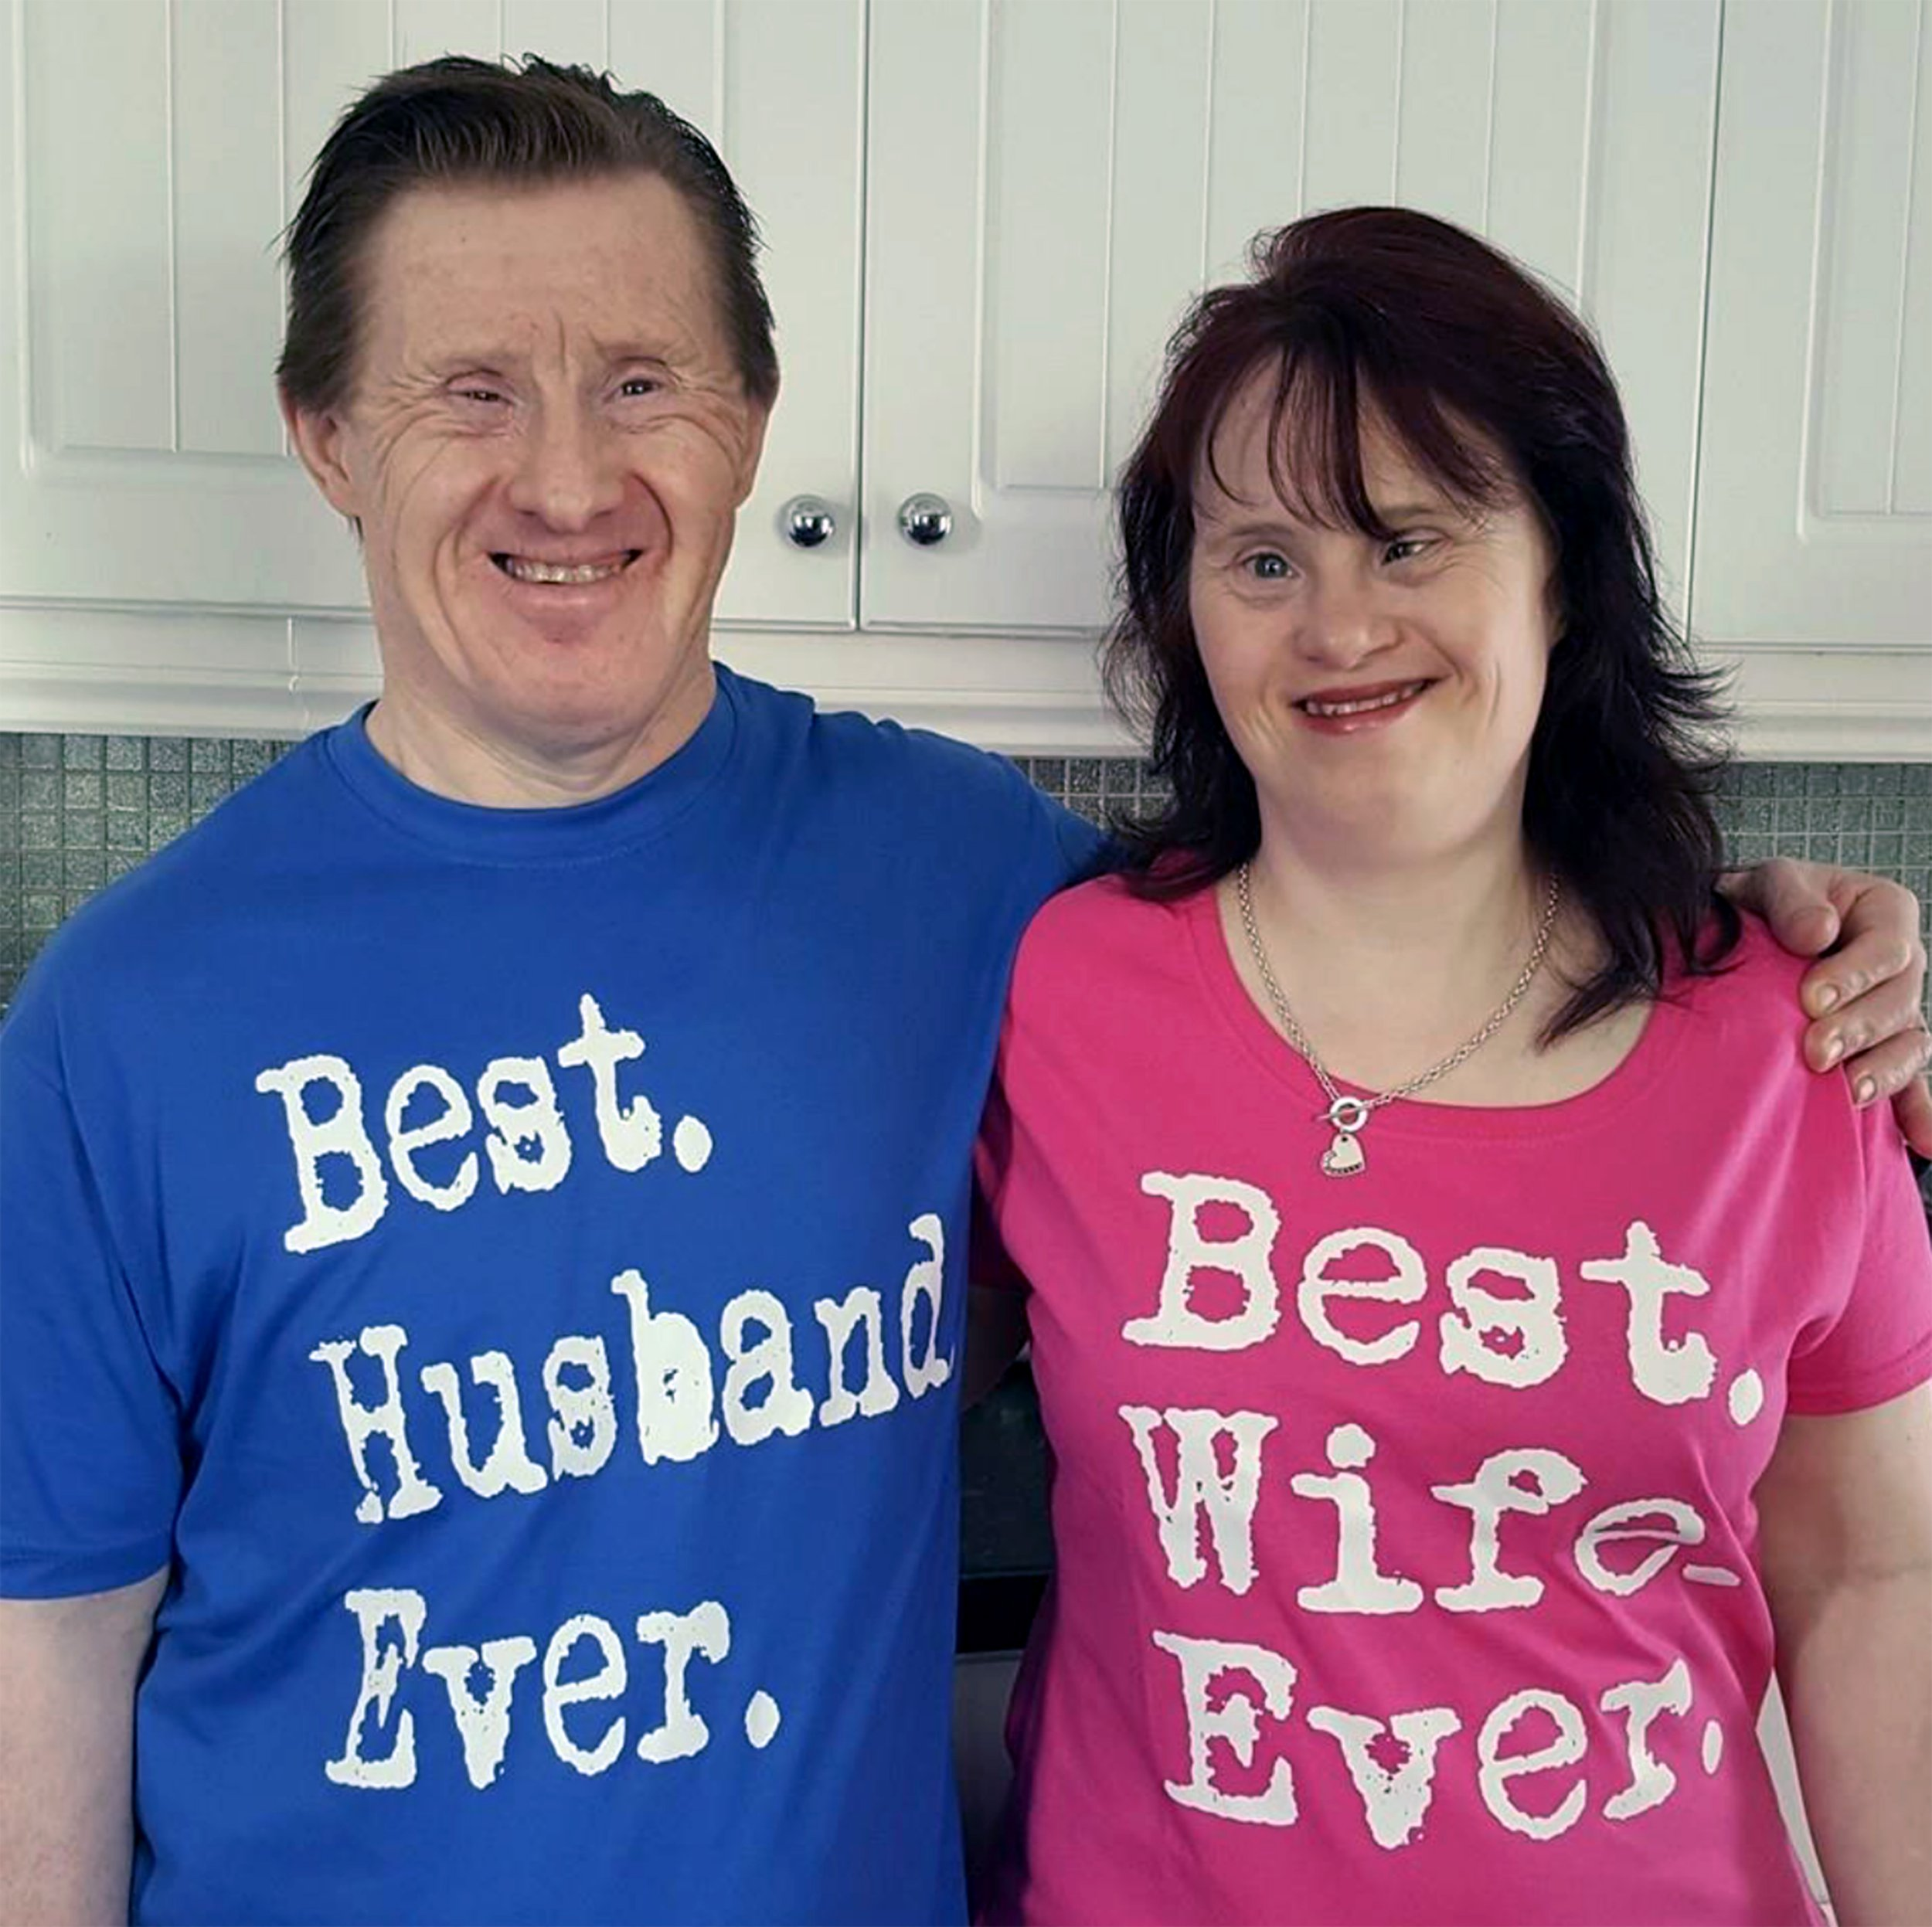 PIC FROM Caters News - (PICTURED: Maryanne and Tommy wearing their best husband/ wife tops) - A Downs Syndrome couple have proved doubters wrong after 23 years of wedded bliss and a huge Facebook following of people inspired by their heartwarming story. Maryanne and Tommy Pilling were thought to be the first Downs couple to tie the knot in 1995 but were hit by a wave of criticism. The pair had dated for around 18 months before Tommy popped the question and the couple went on to tie the knot at St Marys Church in Shoeburyness,Essex, in July 1995.SEE CATERS COPY